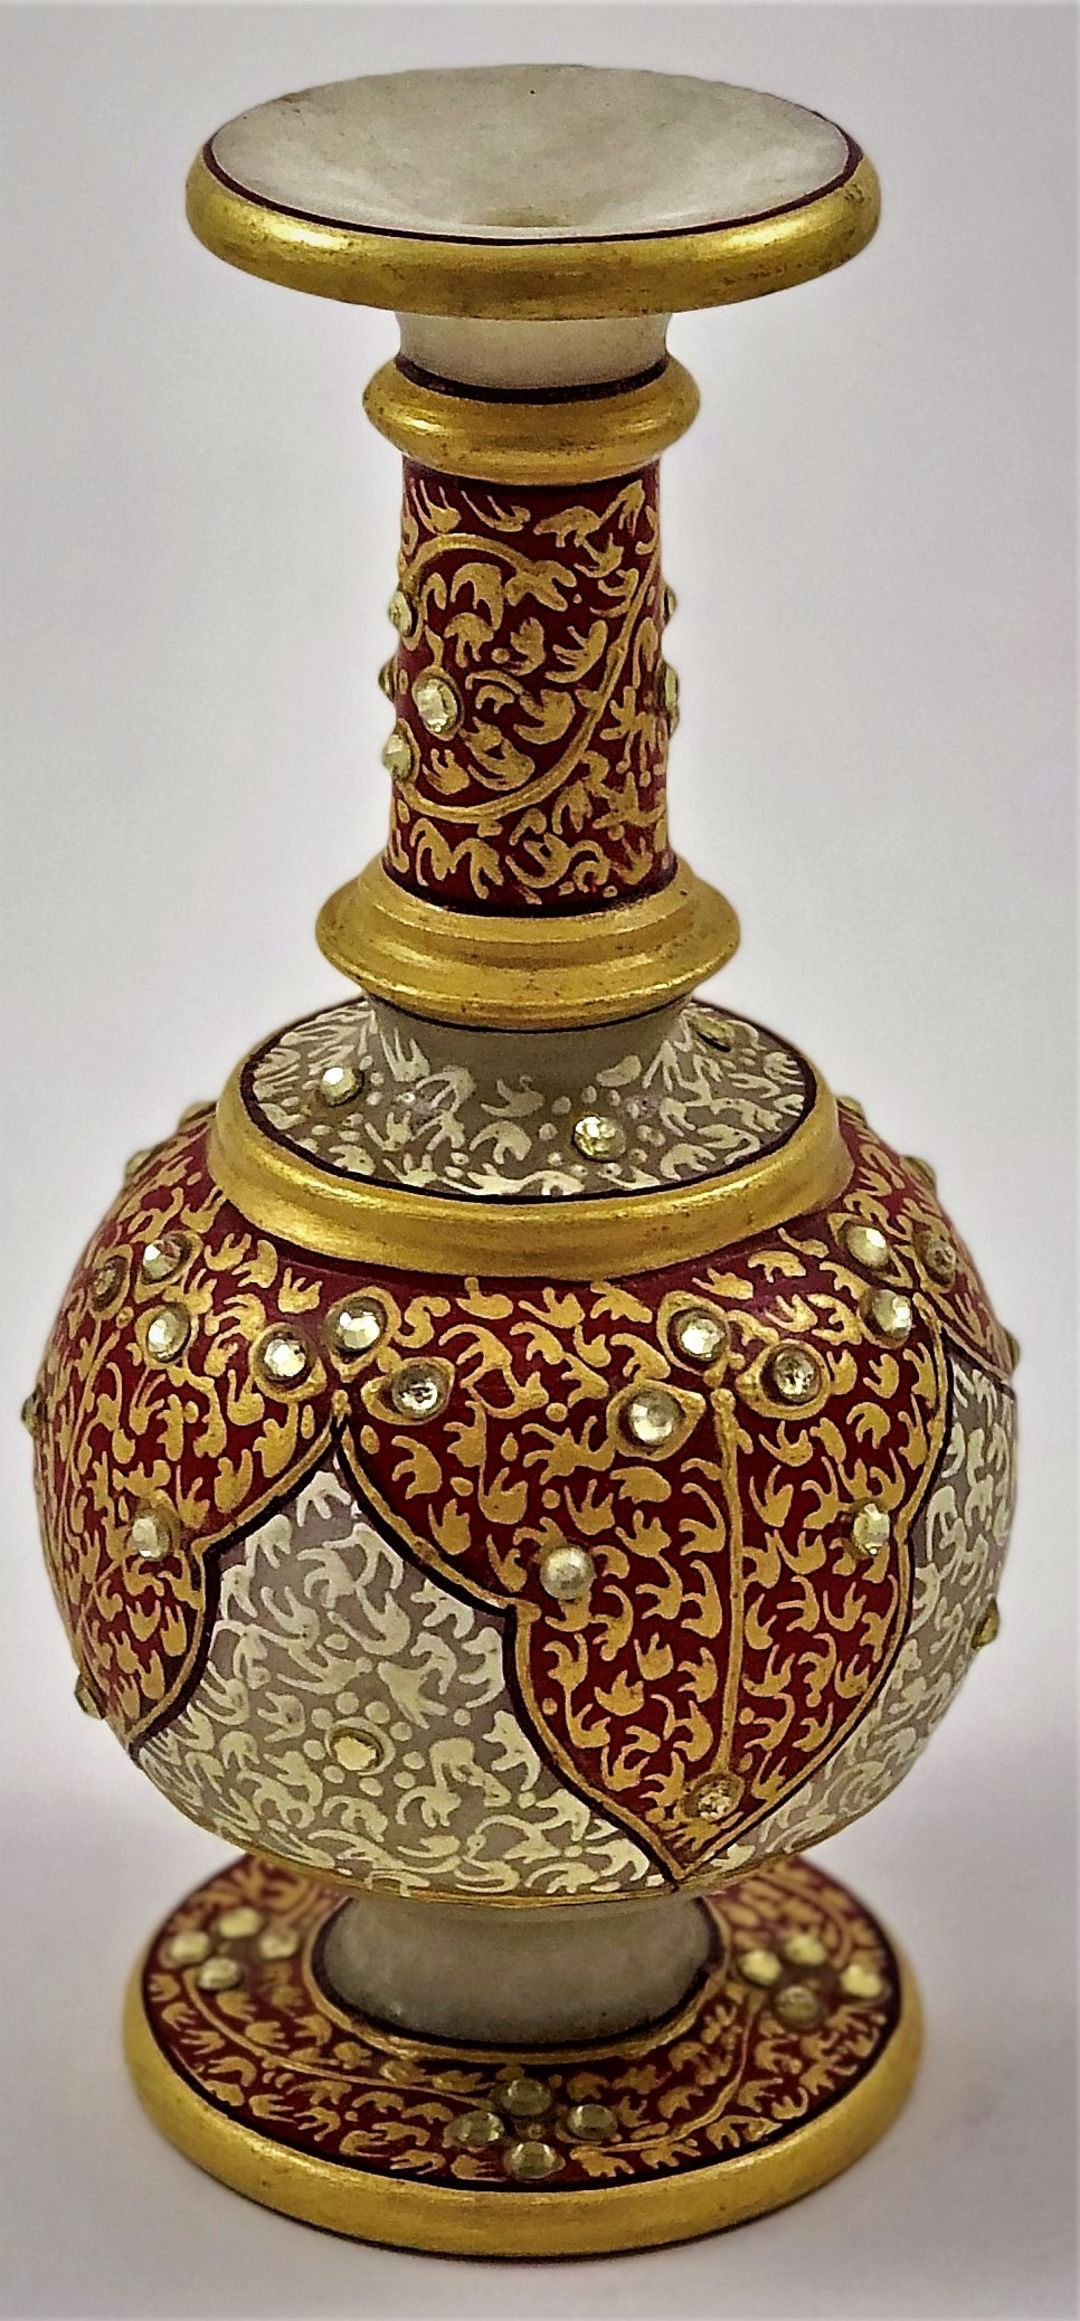 Jeweled rich white marble vase